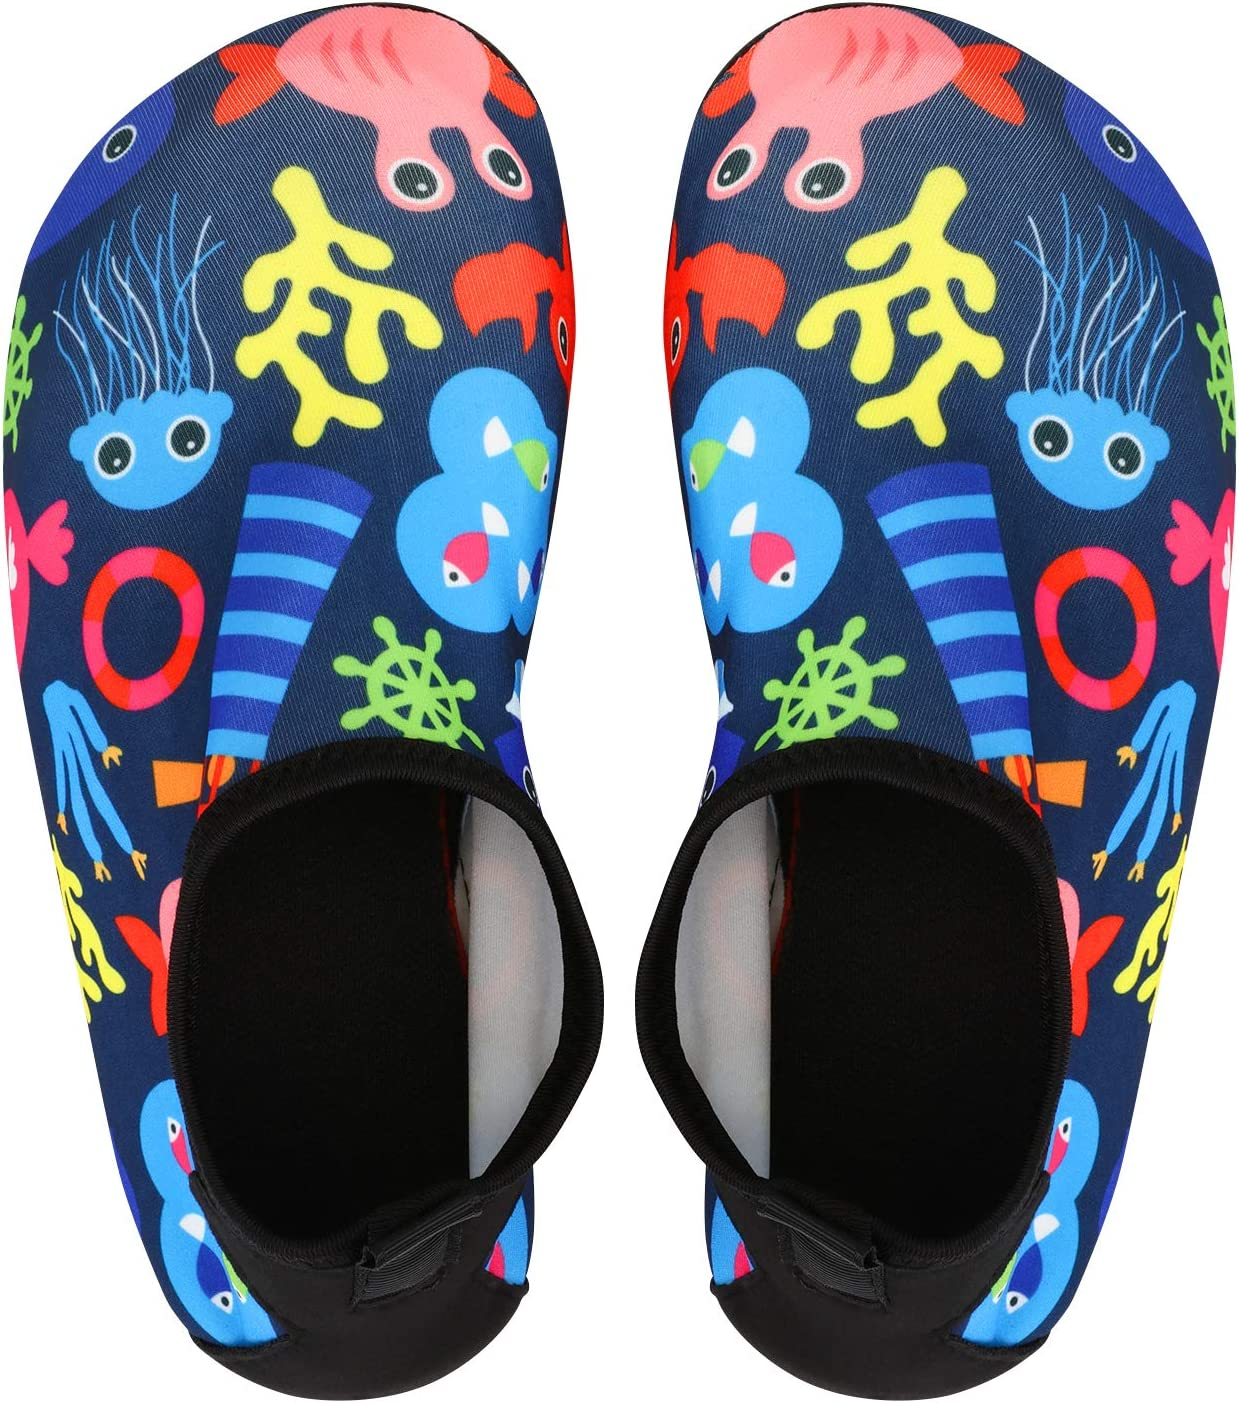 bridawn Kids Water Shoes Toddler Swim Shoes Quick Dry Non-Slip Barefoot Aqua Socks for Beach Pool